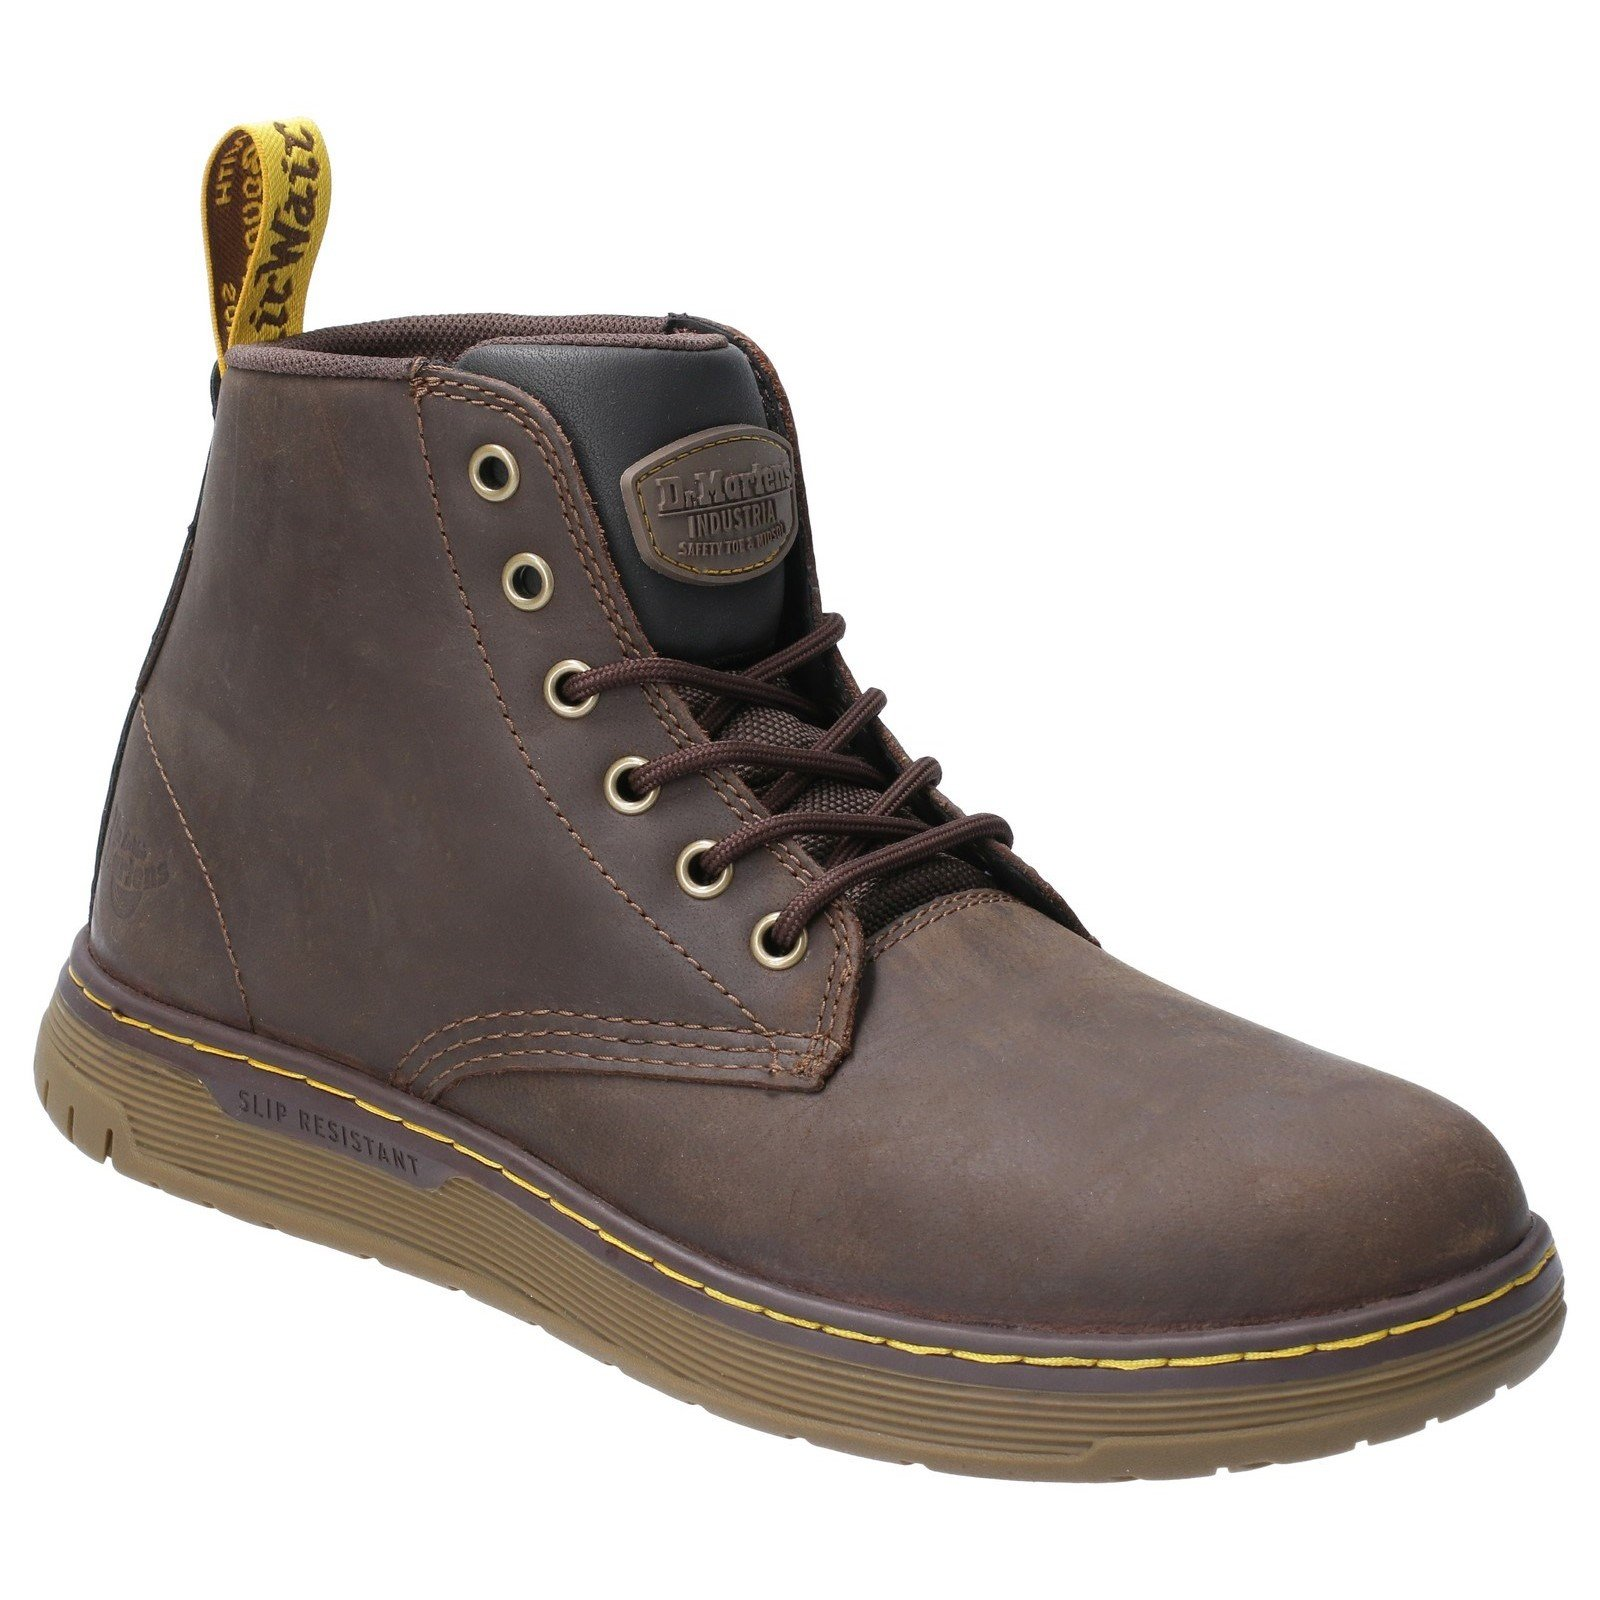 Dr Martens Unisex Ledger Lace Up Safety Boot Brown 29501 - Brown 13